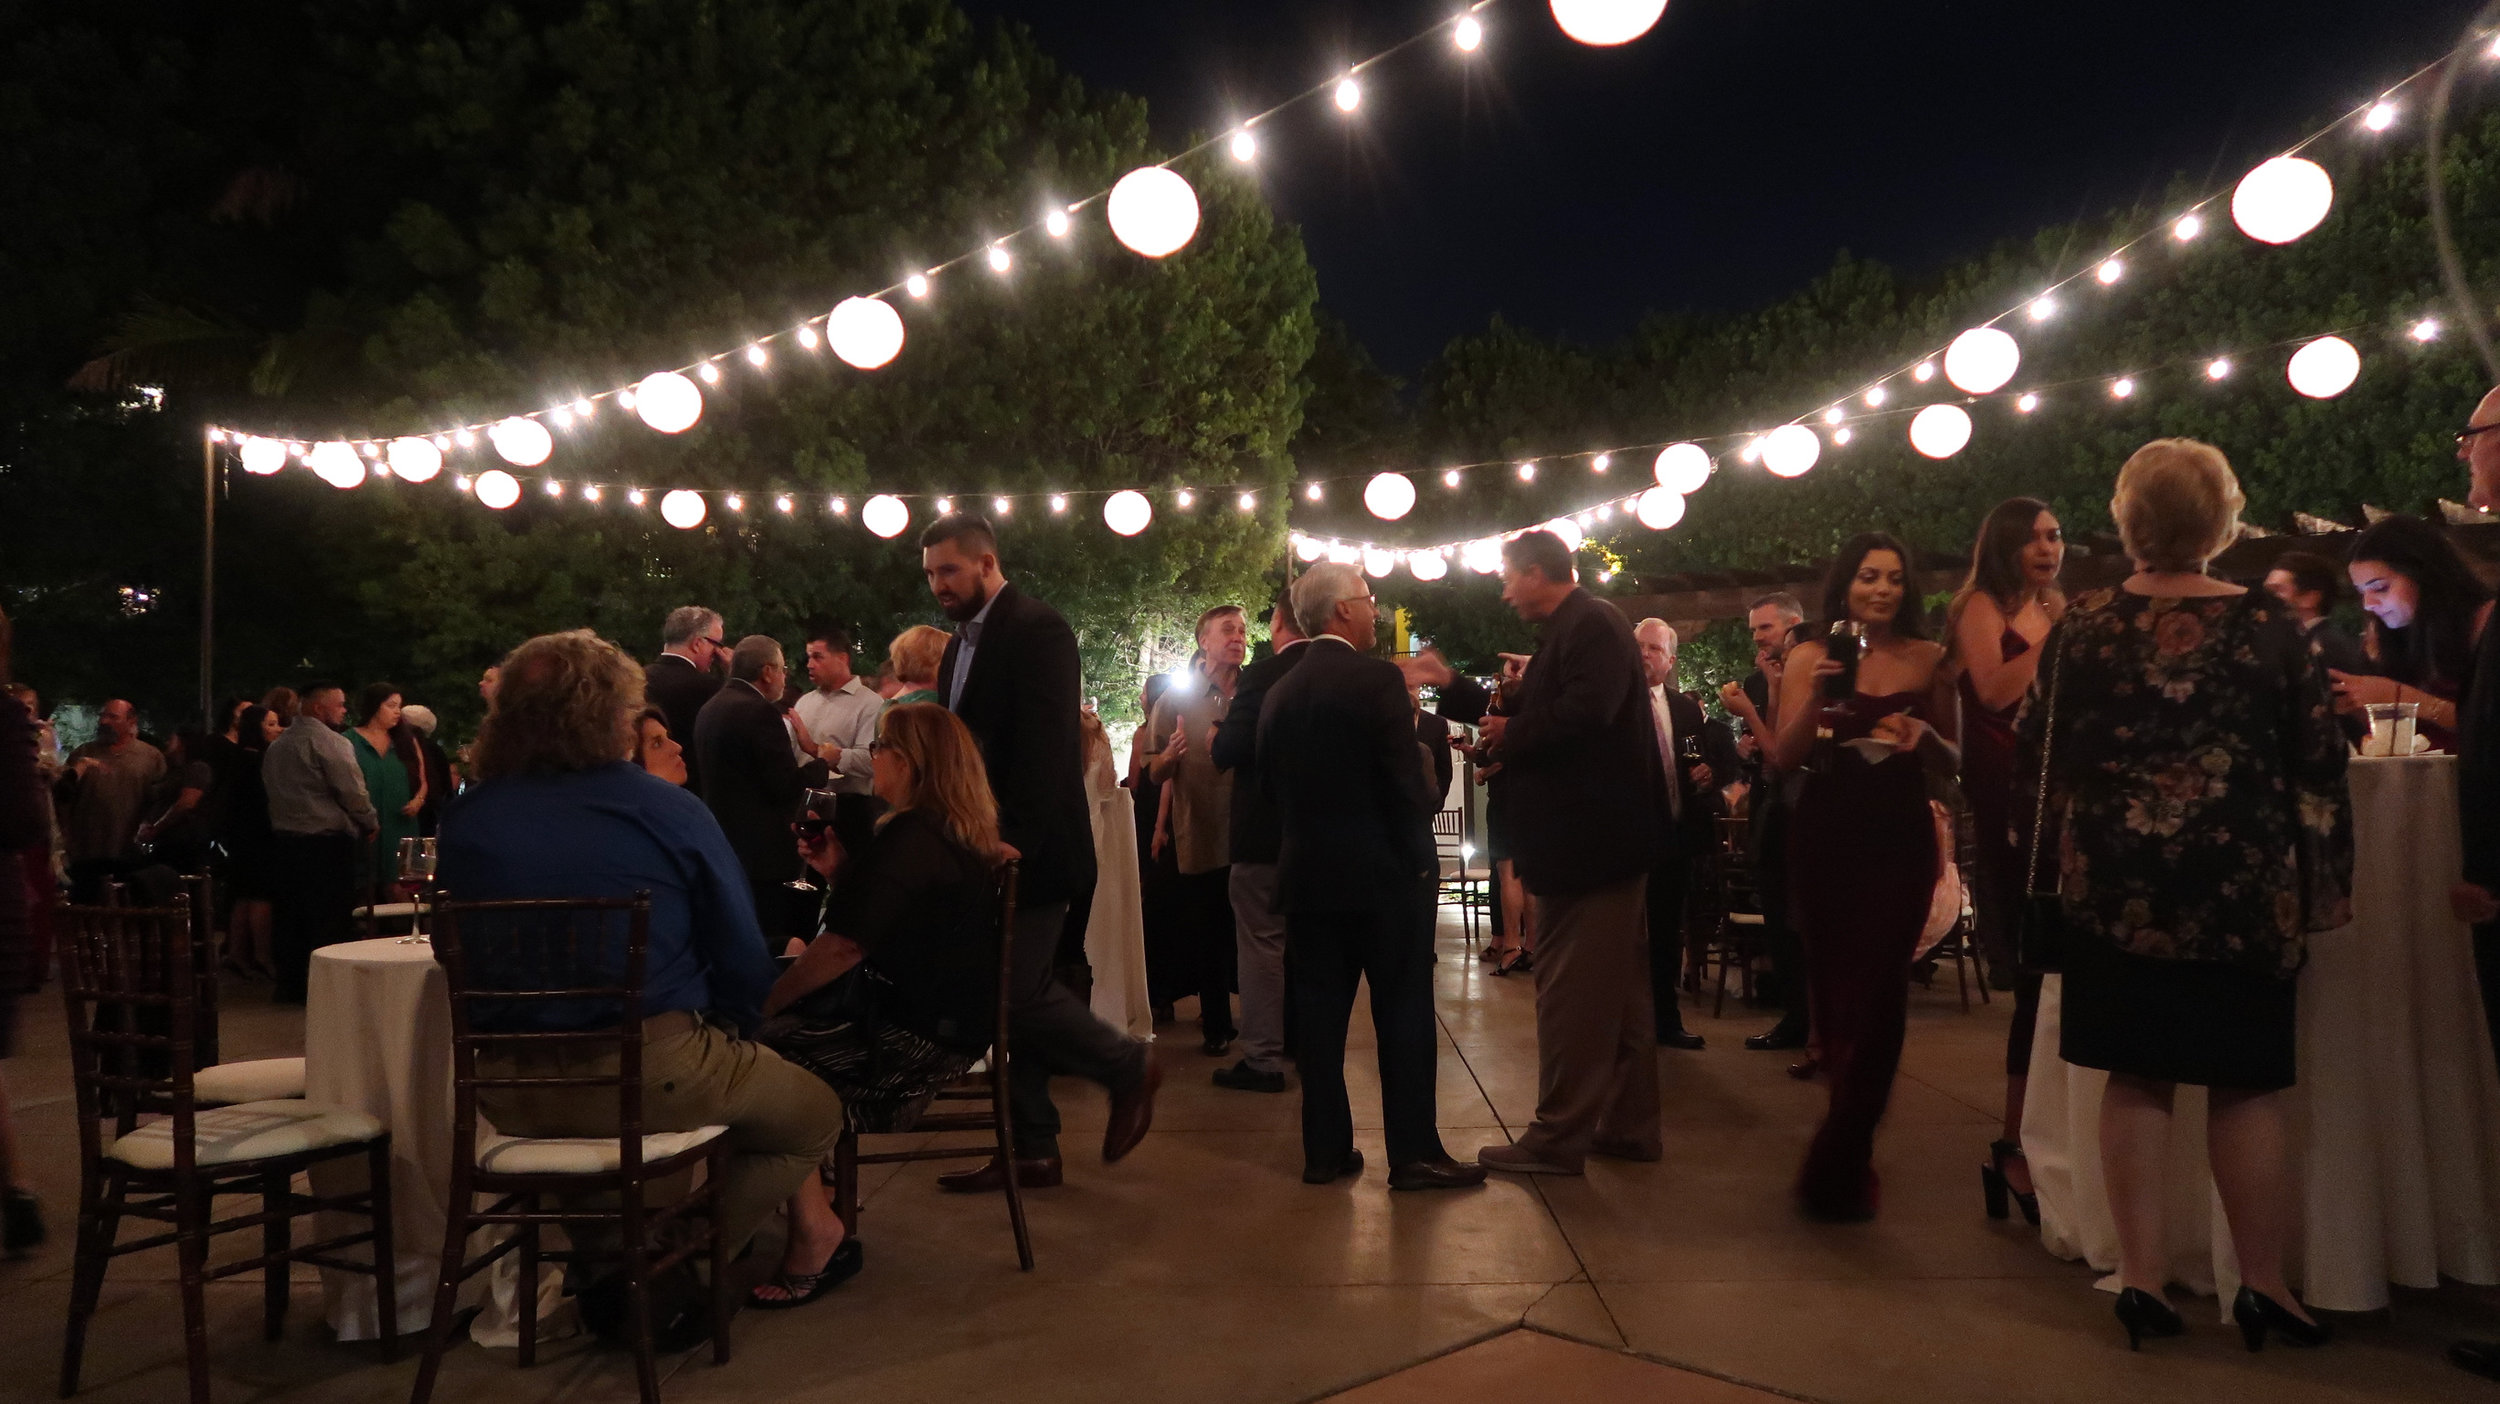 Cocktail Hour at Franciscan Gardens in San Juan Capistrano